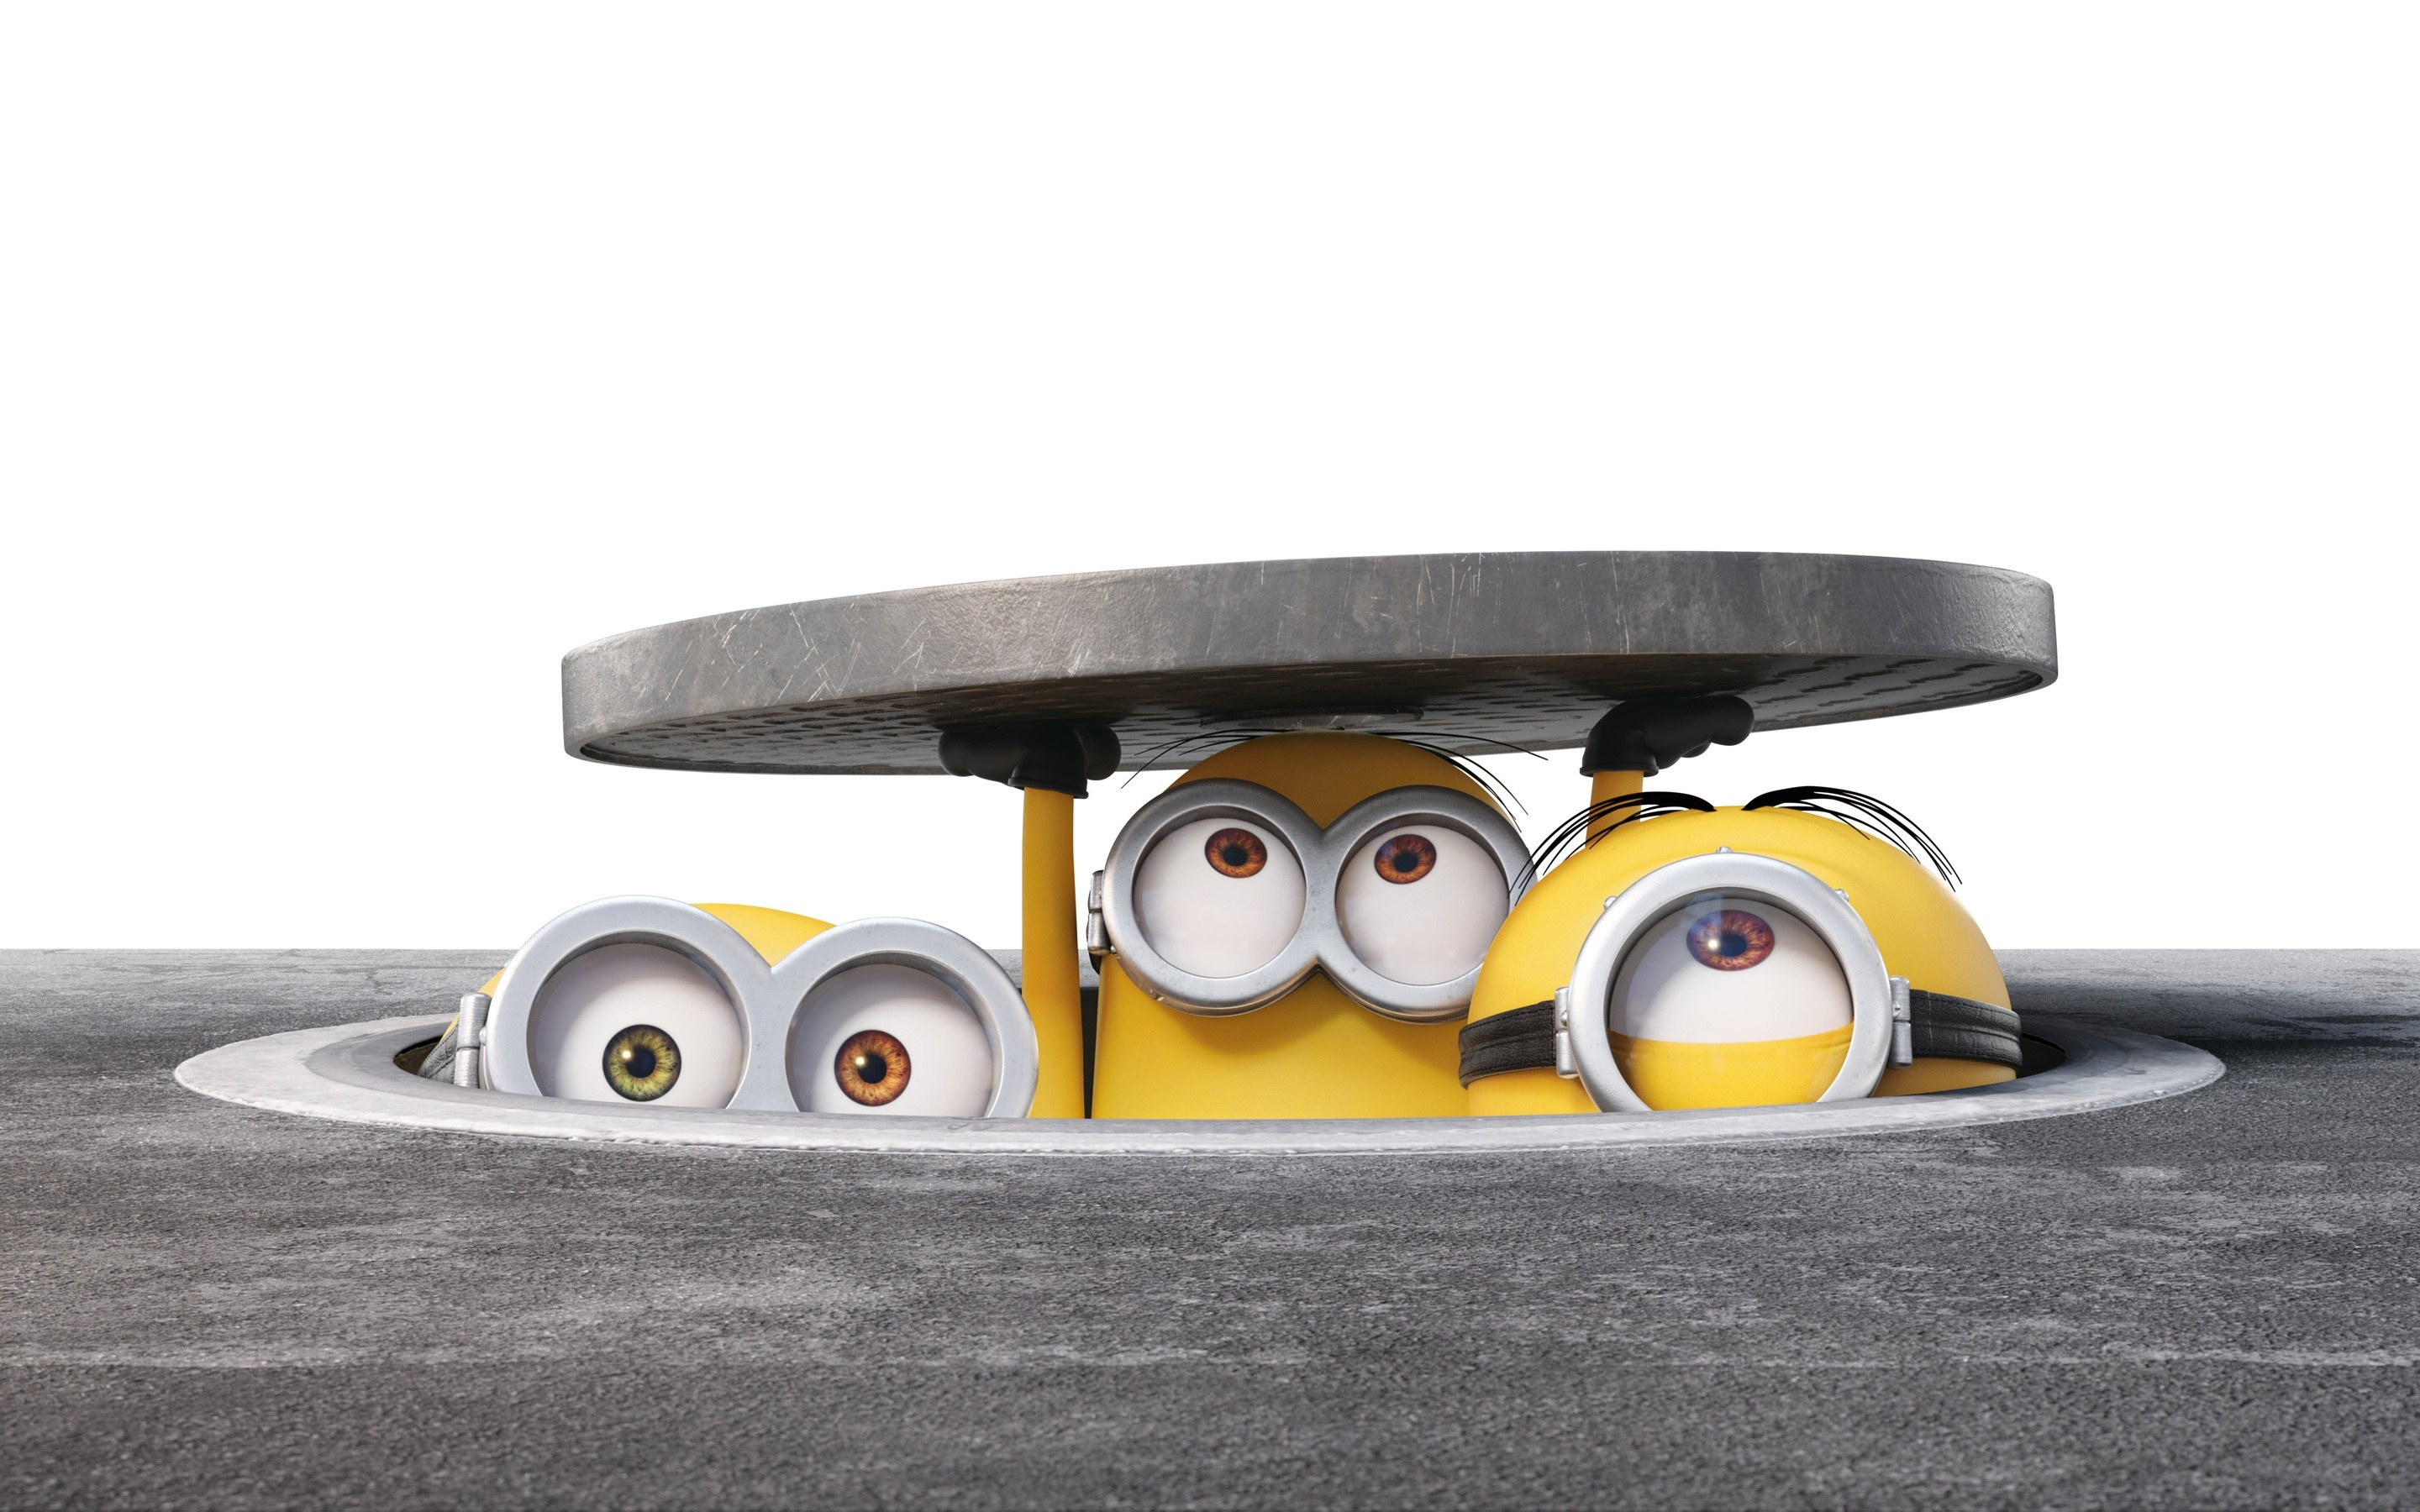 Wallpaper Minions in a sewer